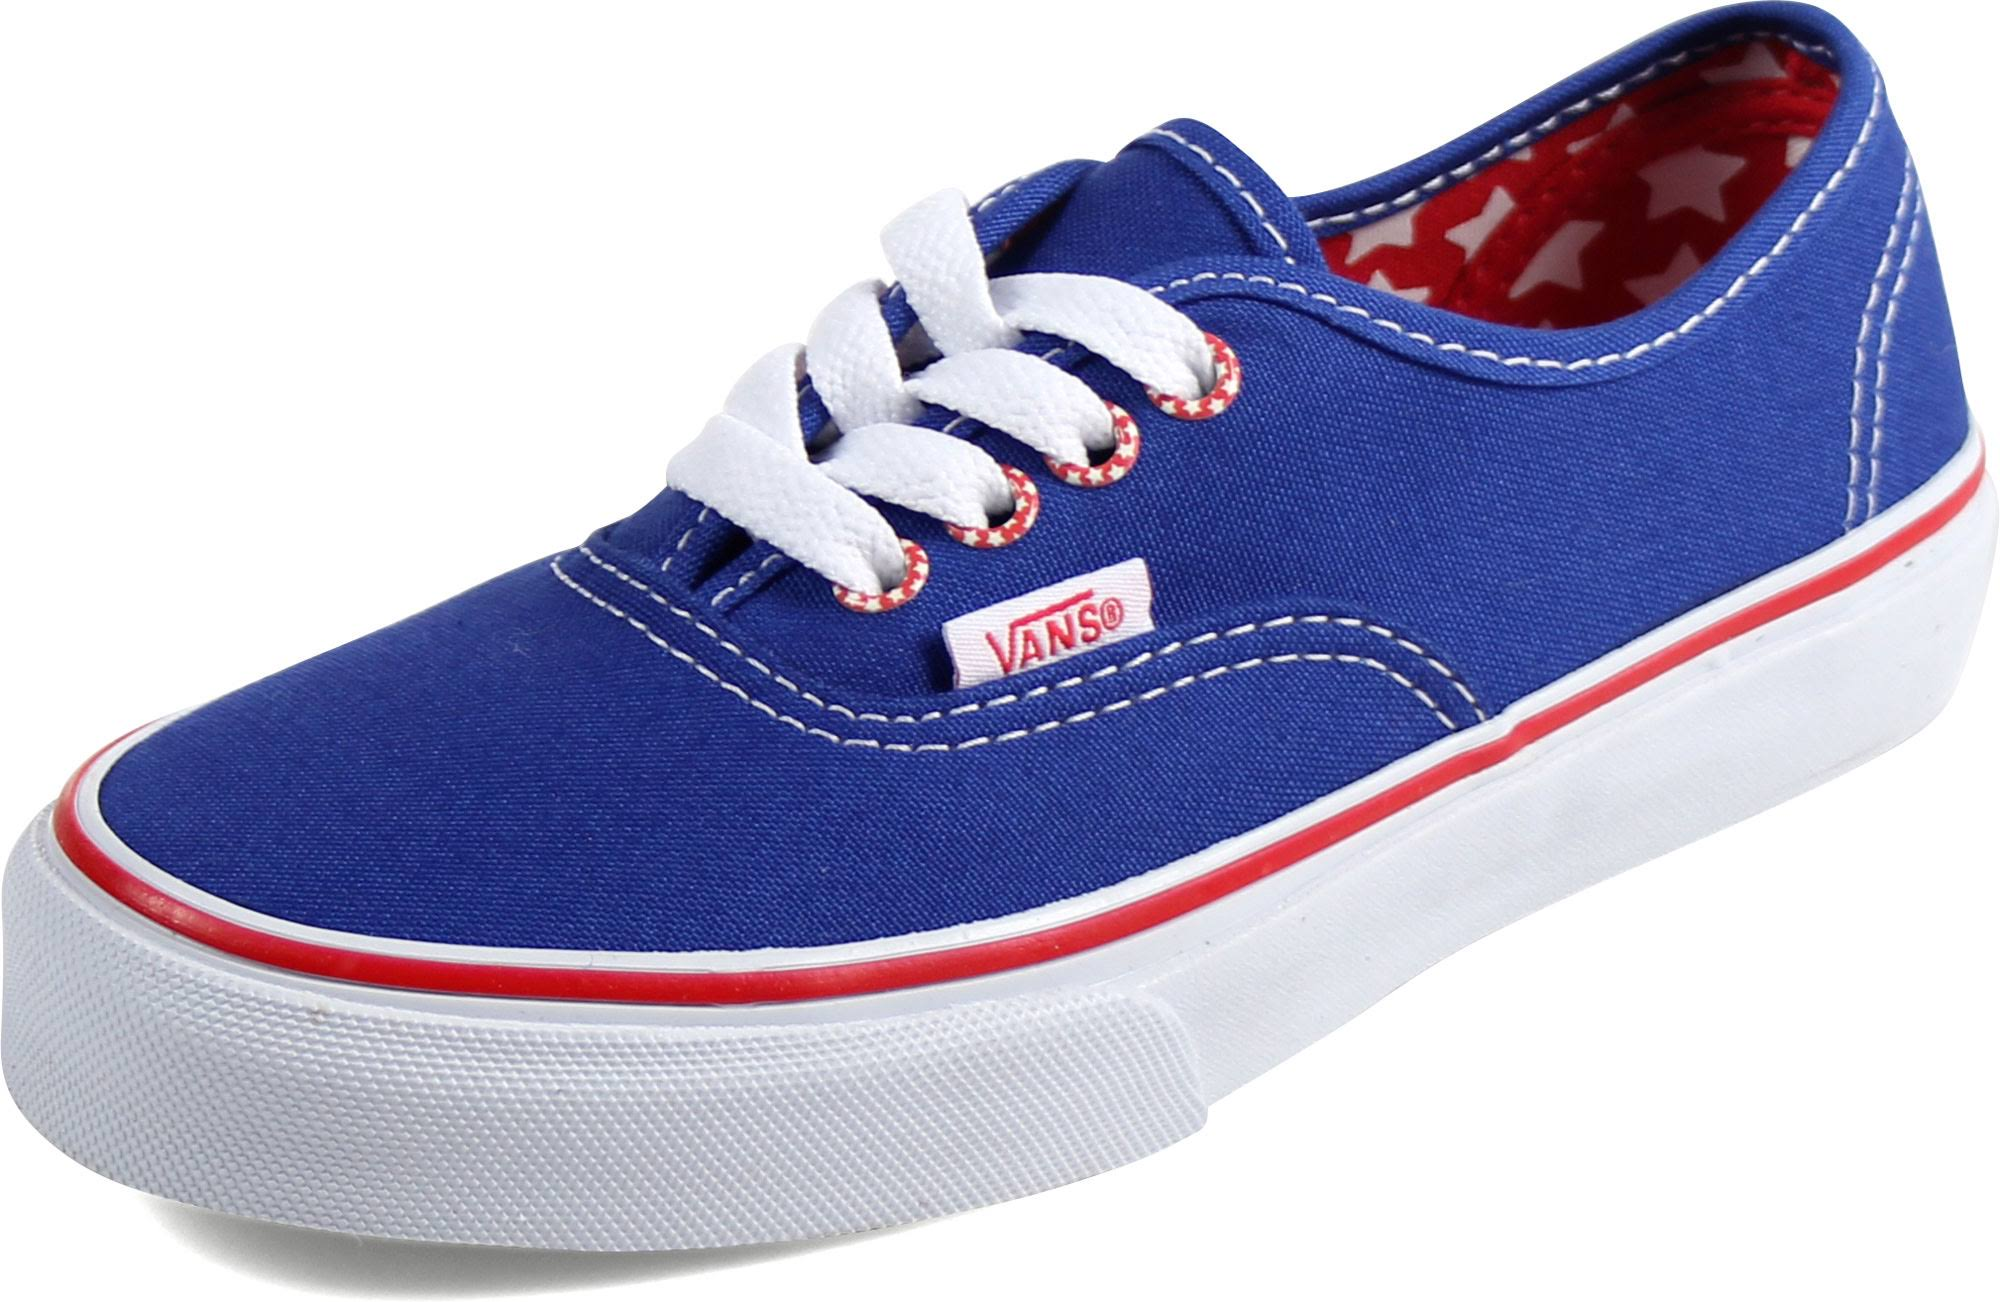 Eyelet Shoes Kids Web The Surf Authentic Vans star IwOIE